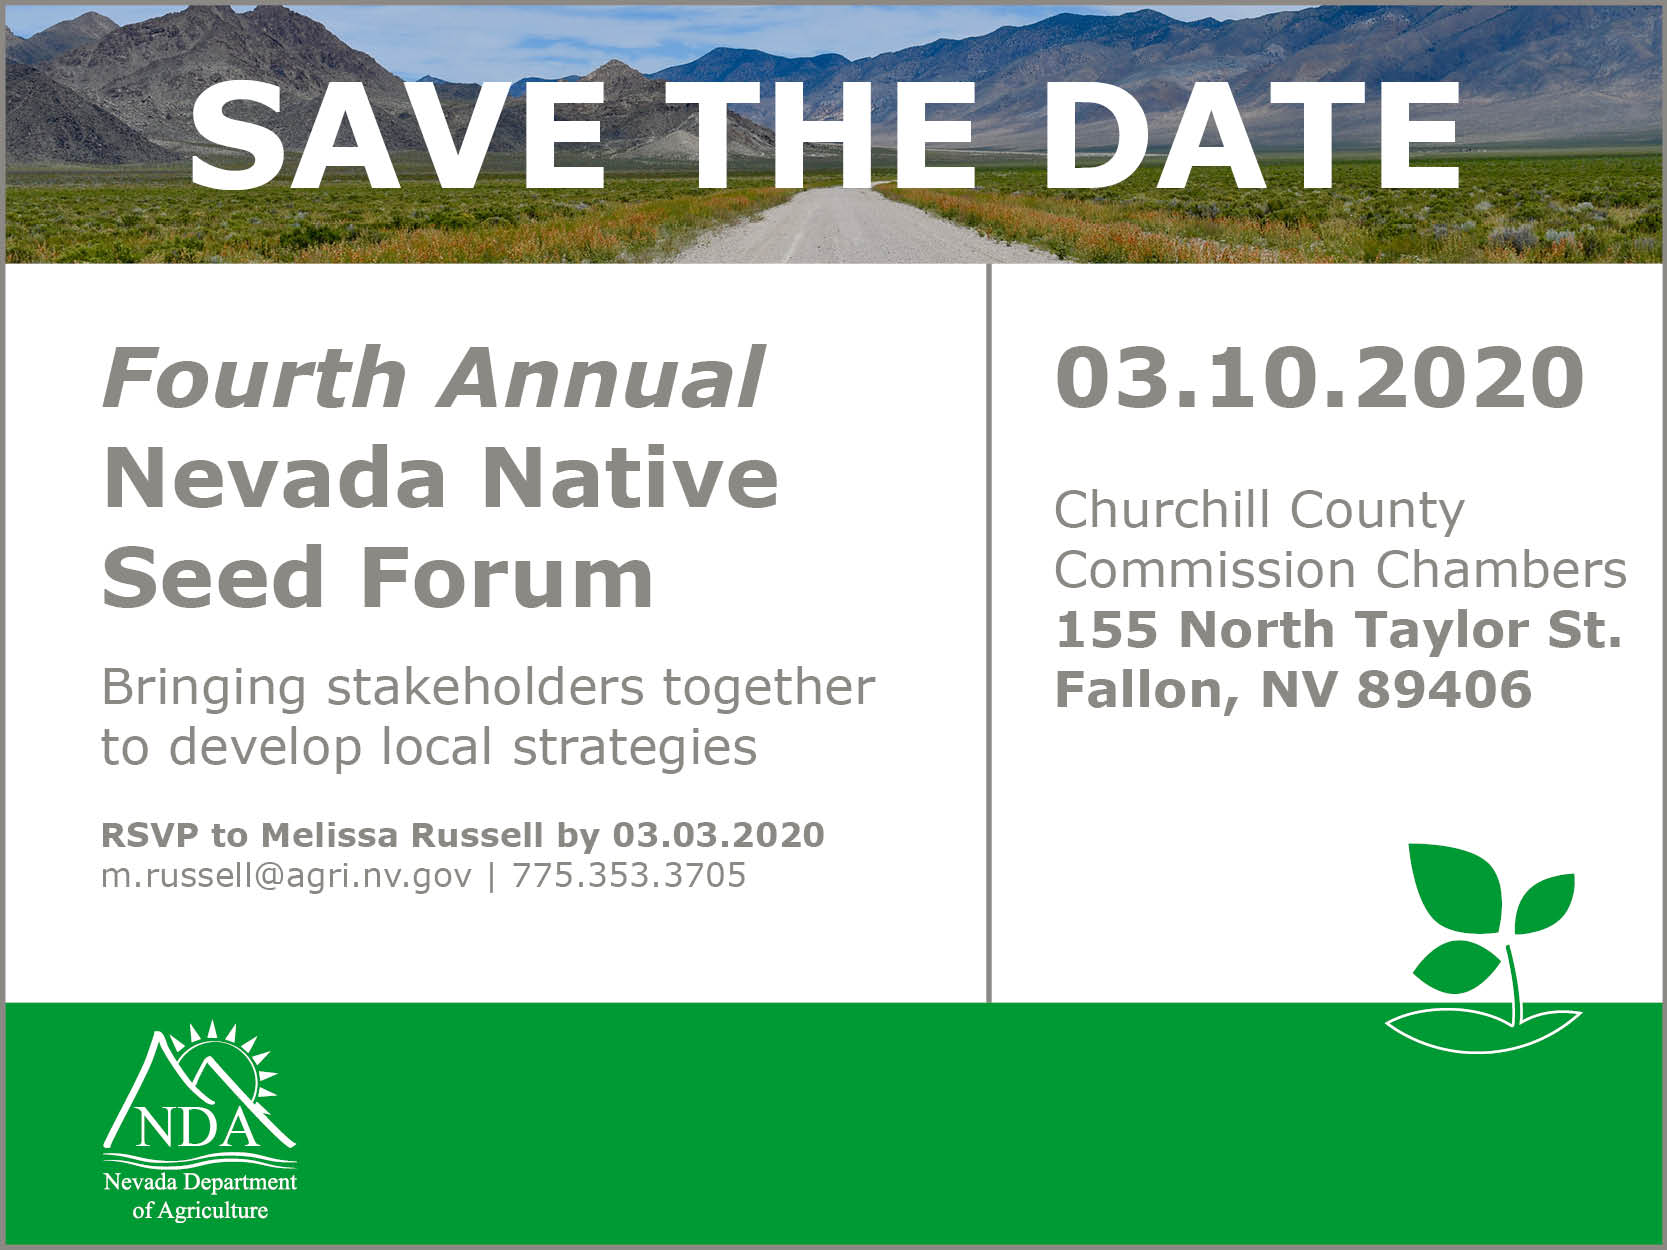 Nevada's Fourth Annual Native Seed Forum 3/10/2020